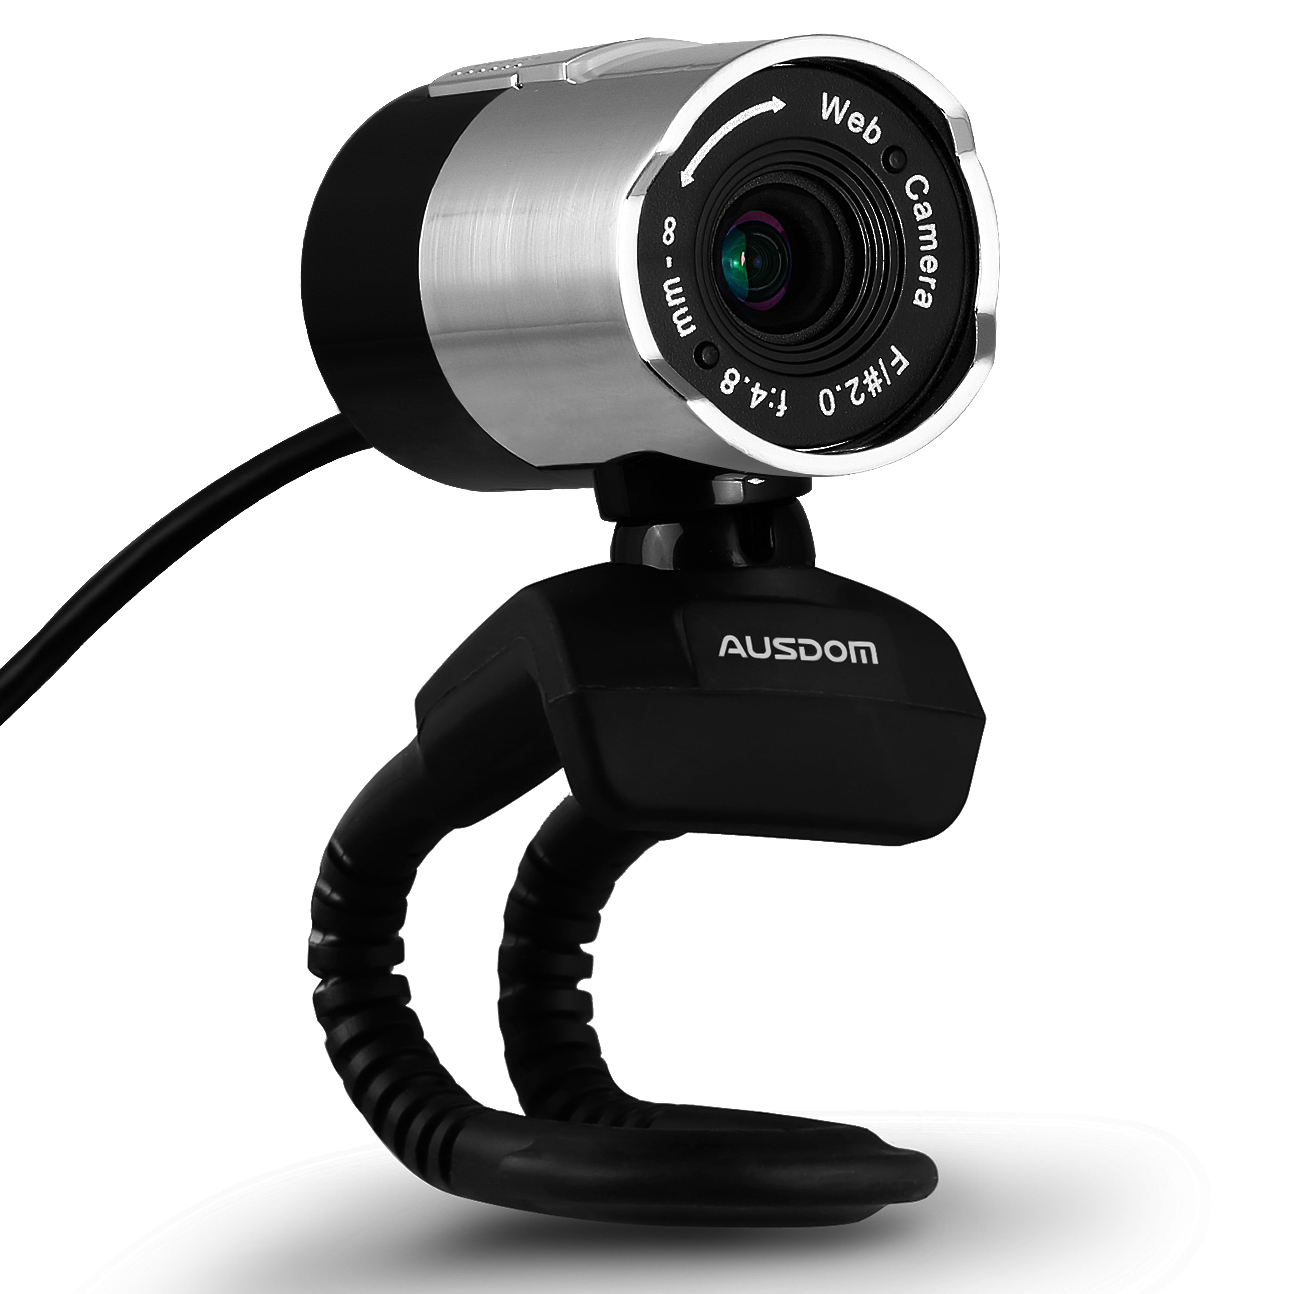 AUSDOM Webcam AW335, Widescreen Video Calling and Recording, 1080p Camera, Desktop or Laptop Webcam by AUSDOM